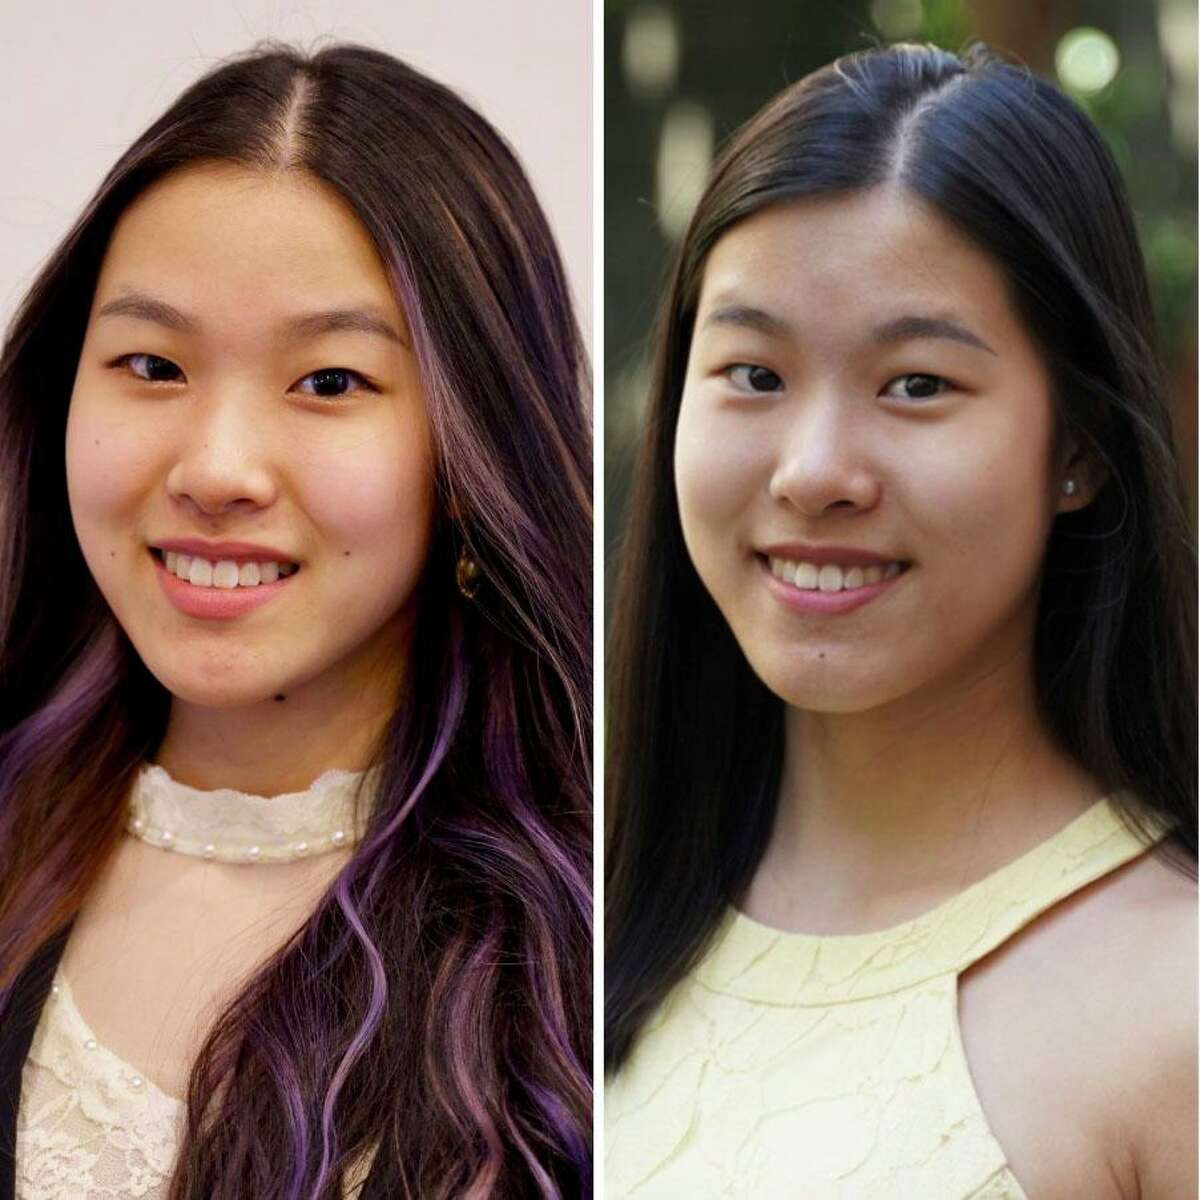 twin sisters Annie, left, and Shirley Zhu